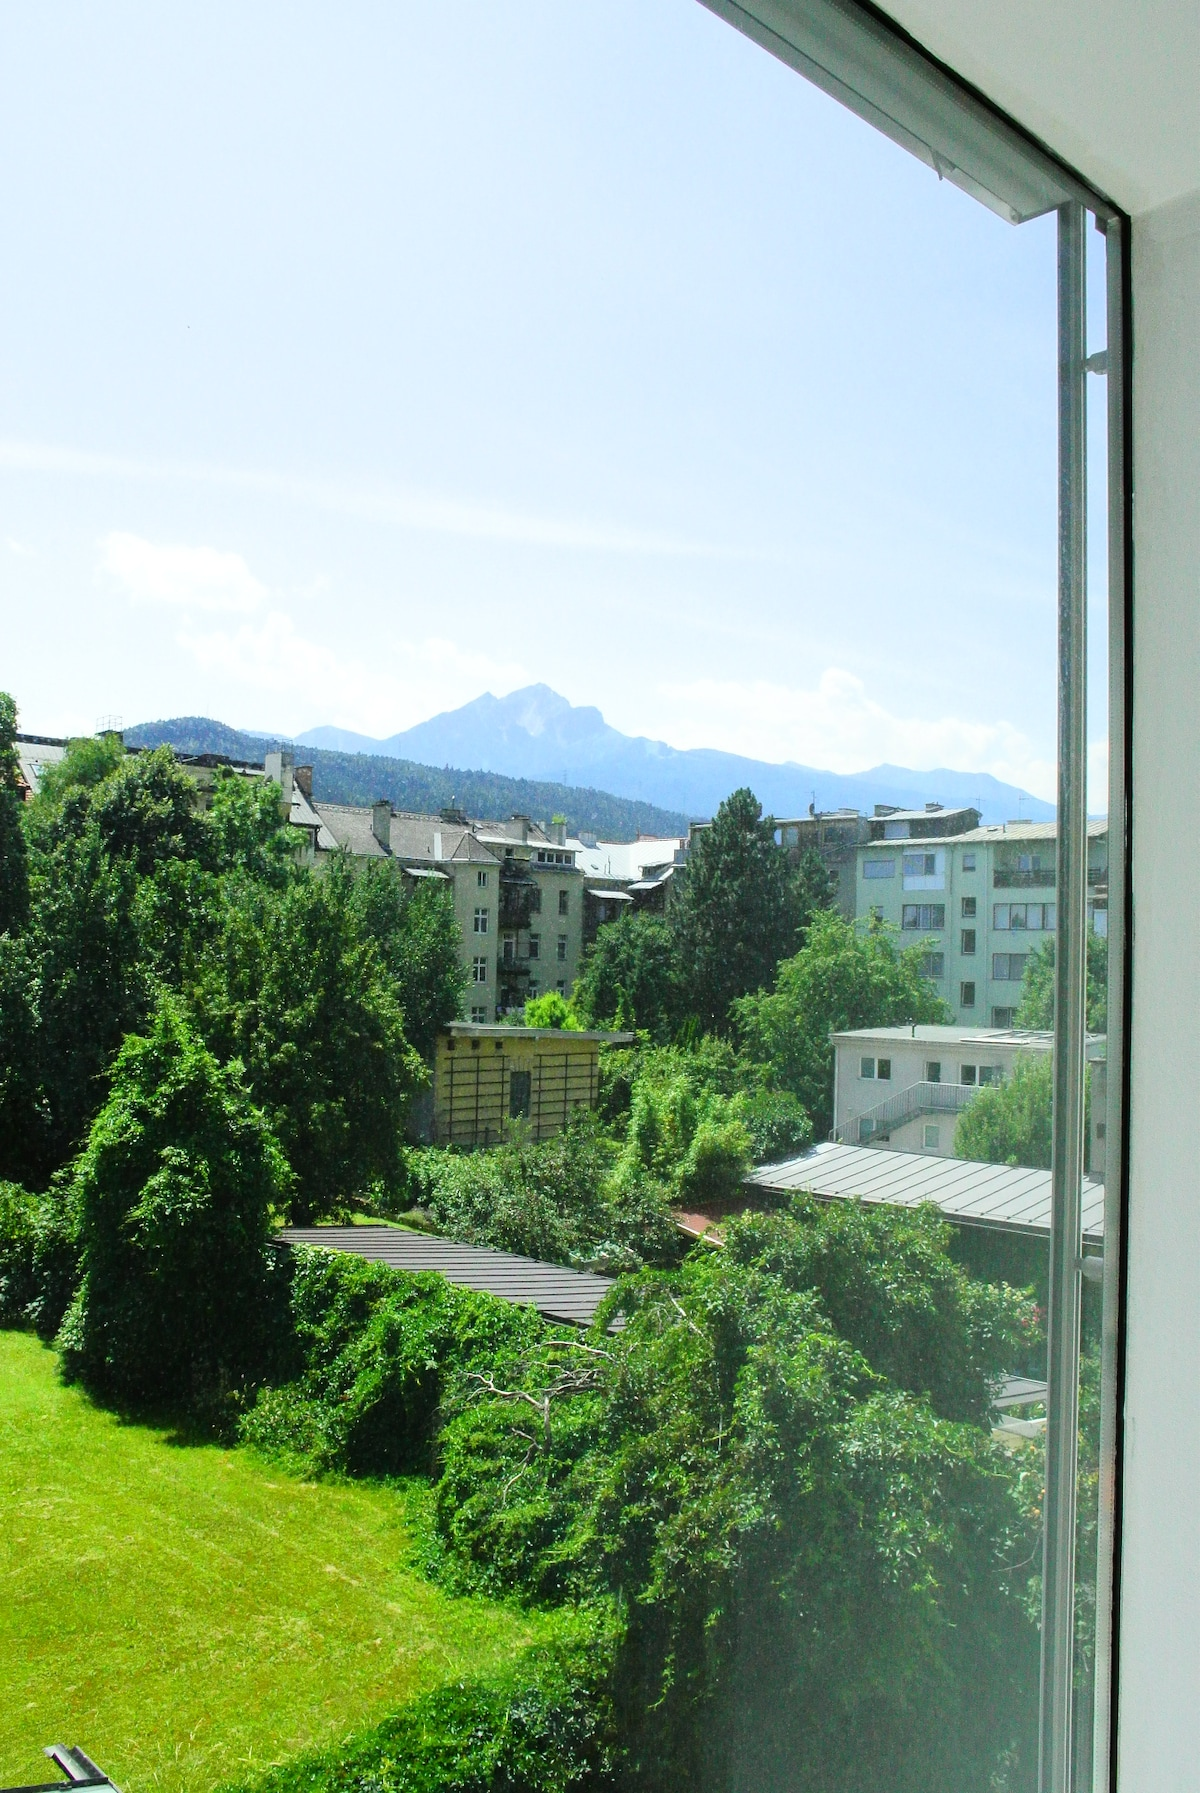 view from the dining area to the green courtyard and mountains